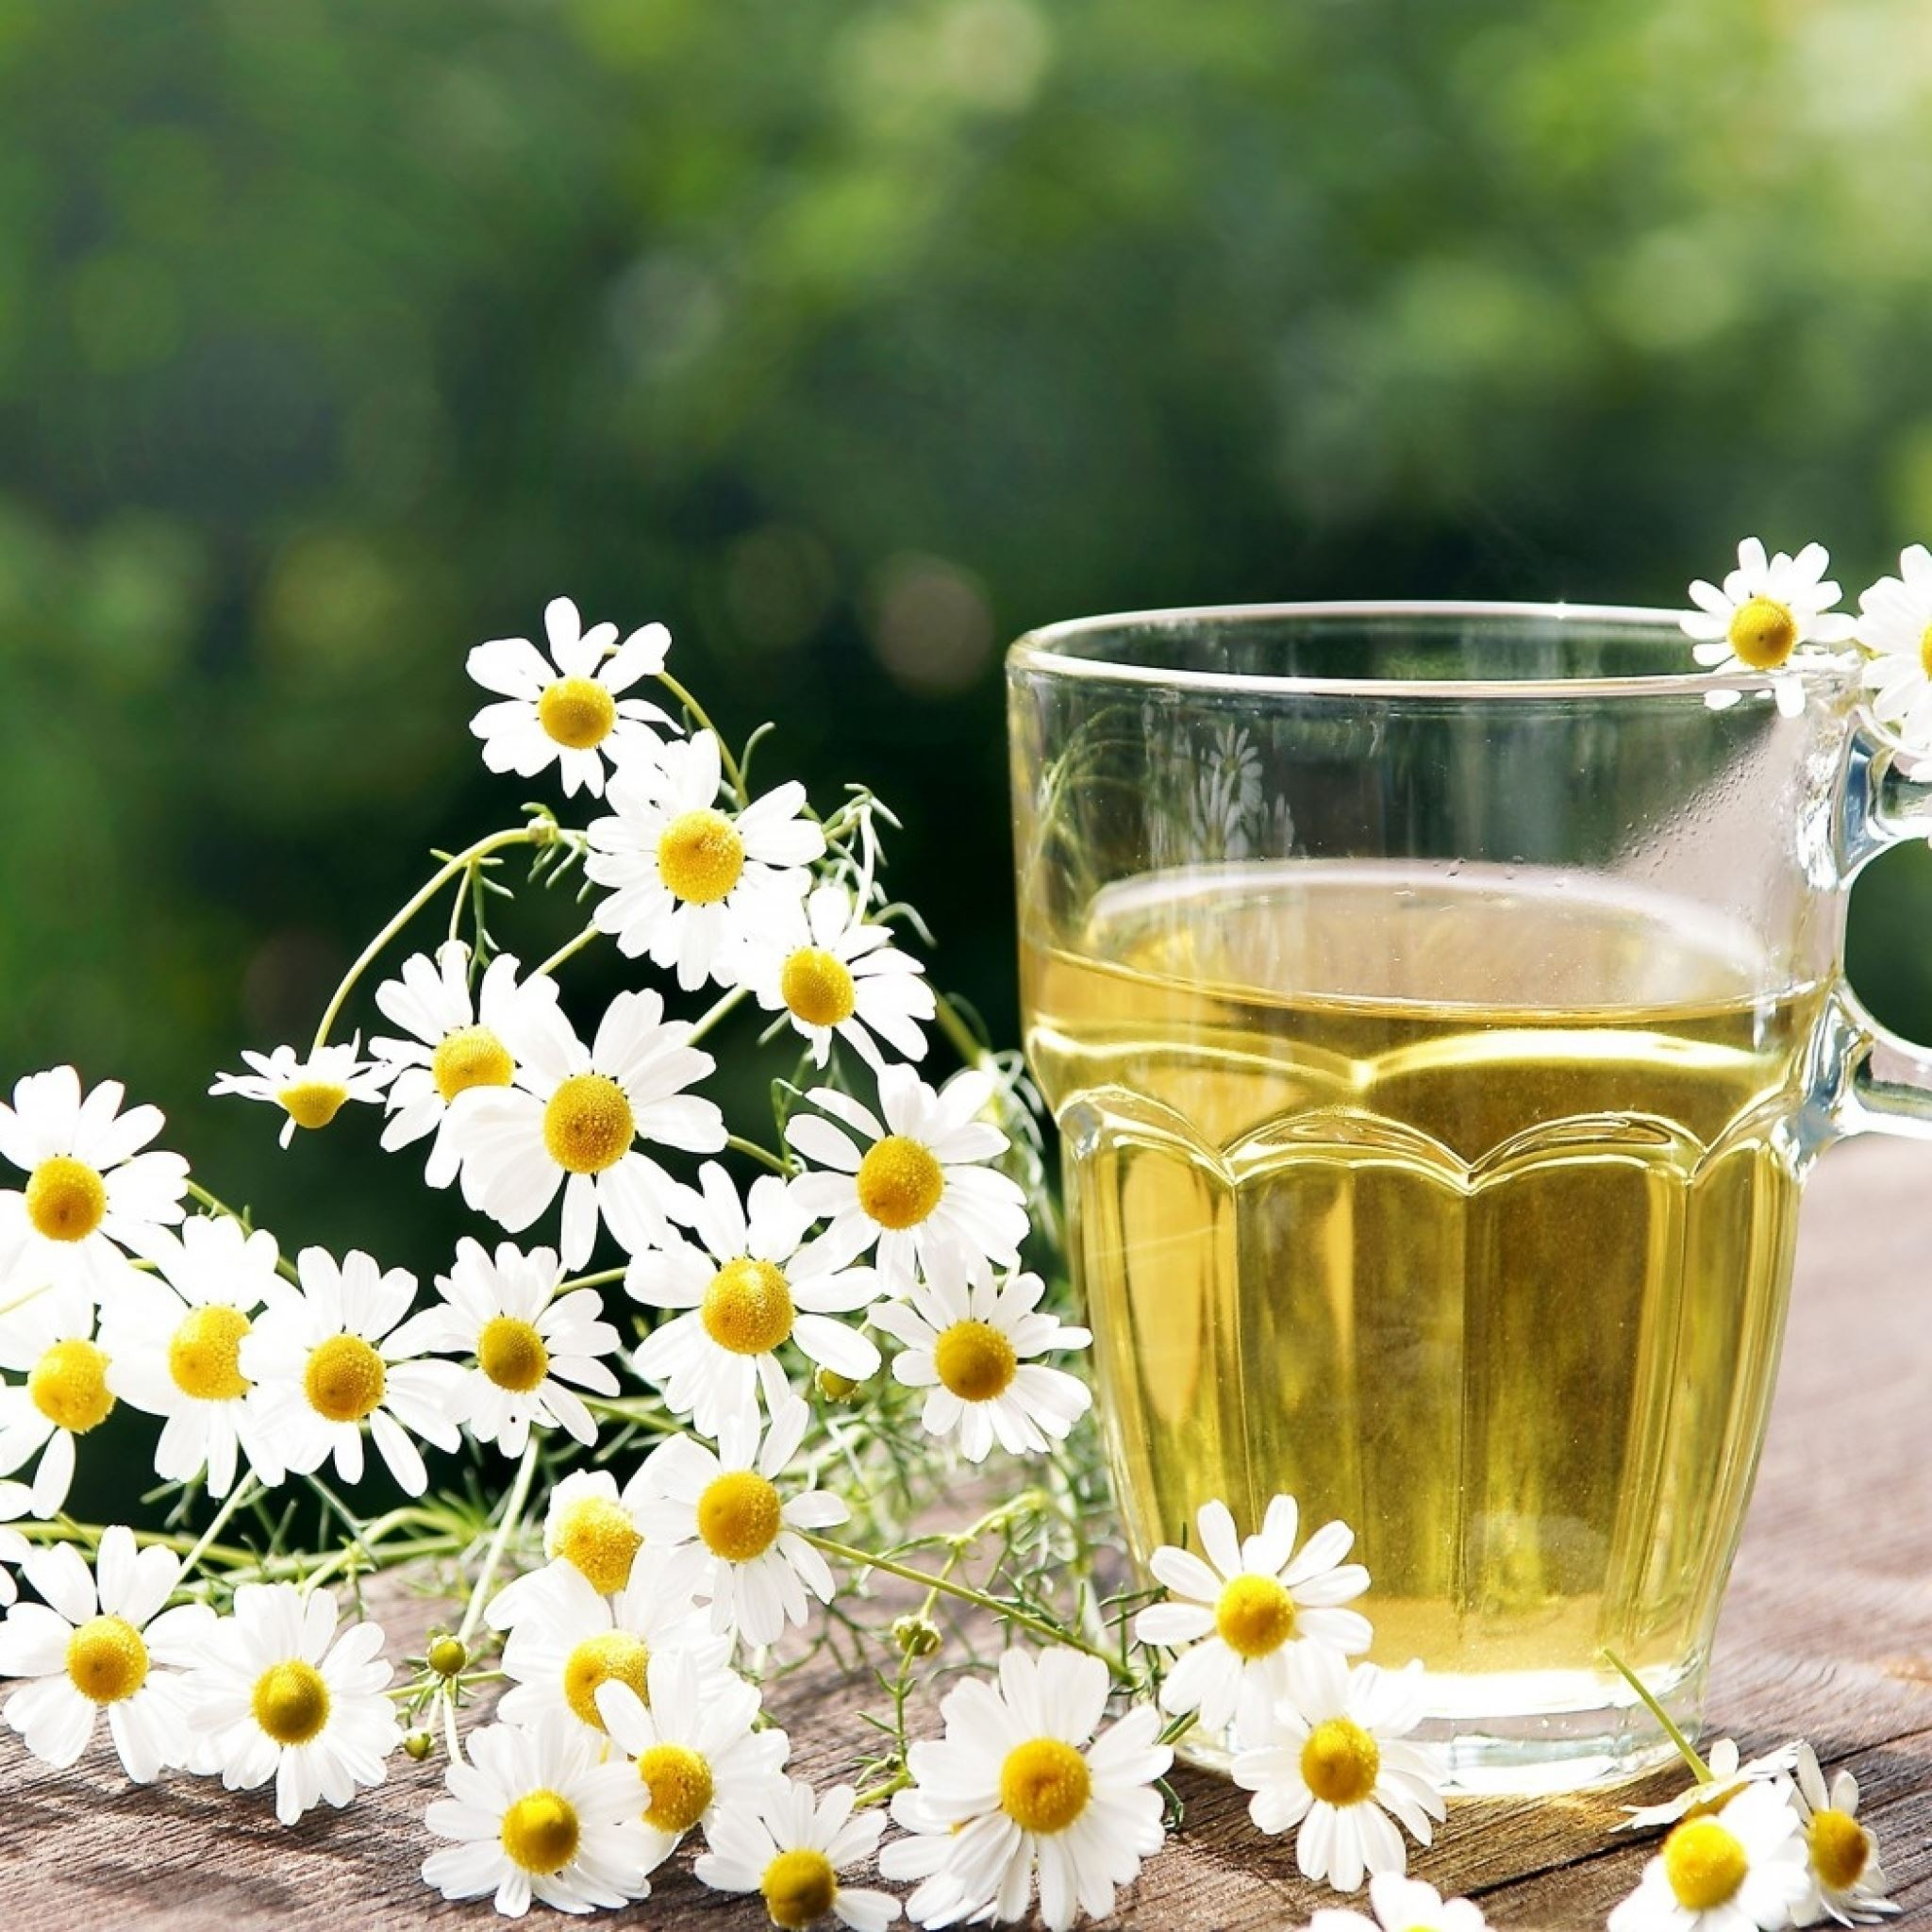 Tea Herbal Chamomile Cup Glass Nature iPad Air wallpaper